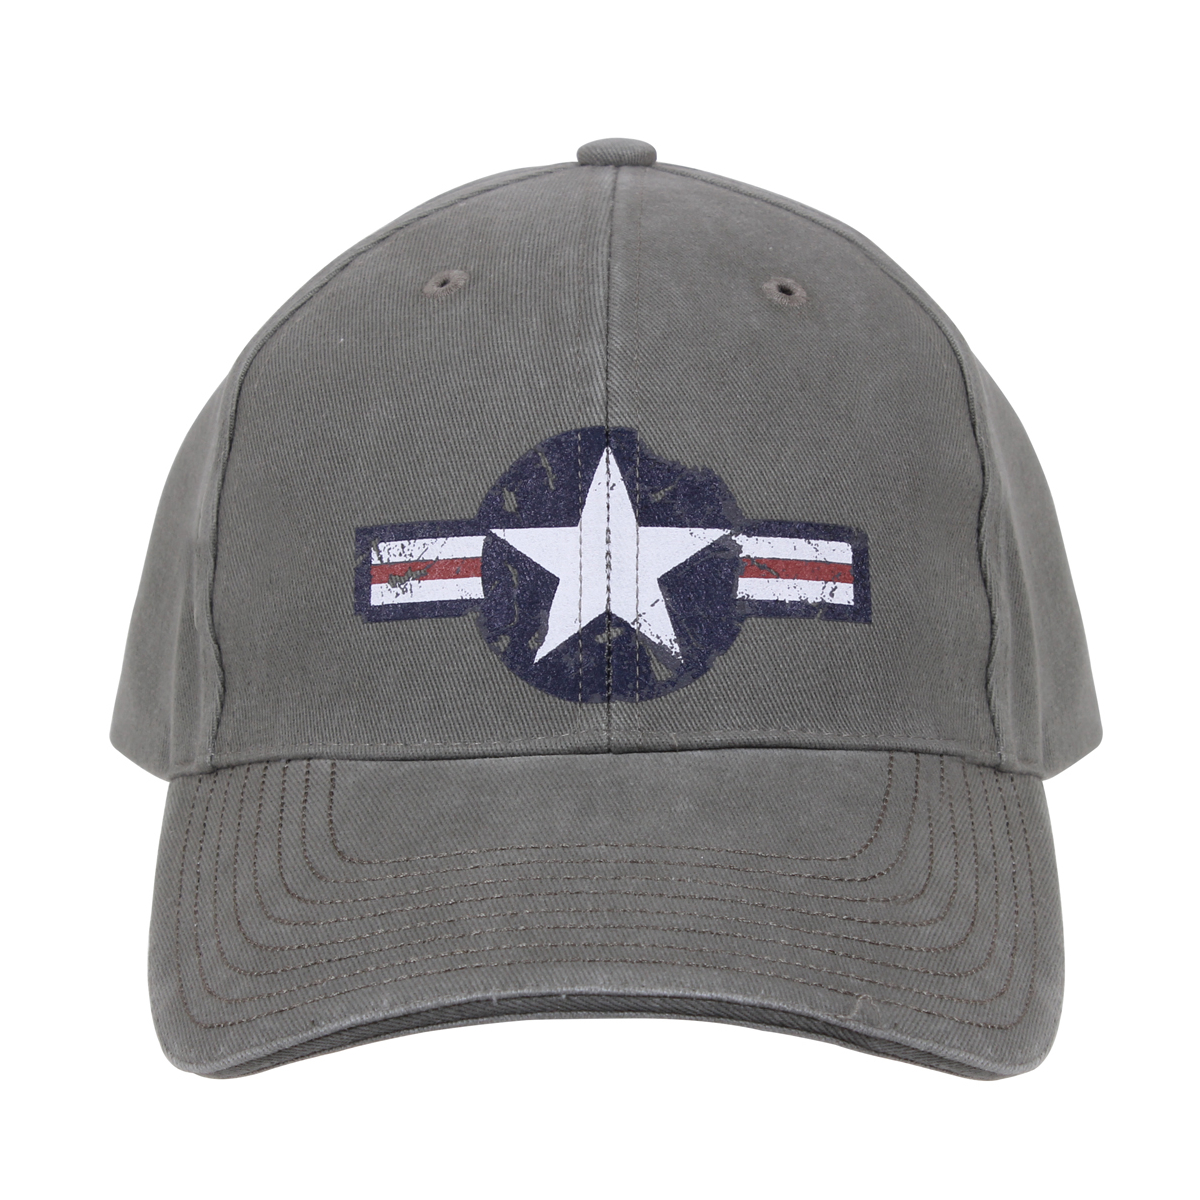 Deluxe Vintage Style Air Corp Logo Low Profile Cap, Hat, Gray